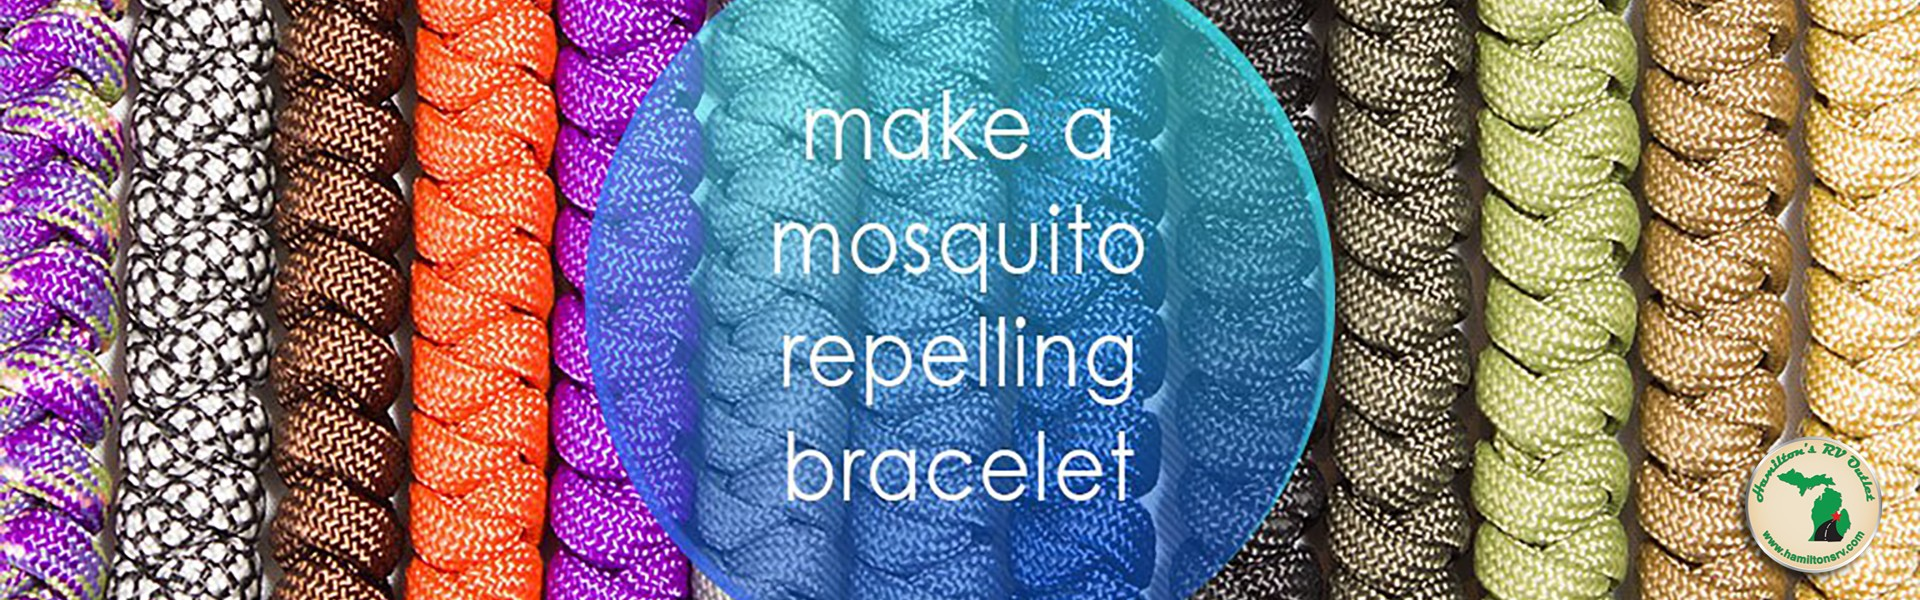 Make a mosquito repelling bracelet Banner